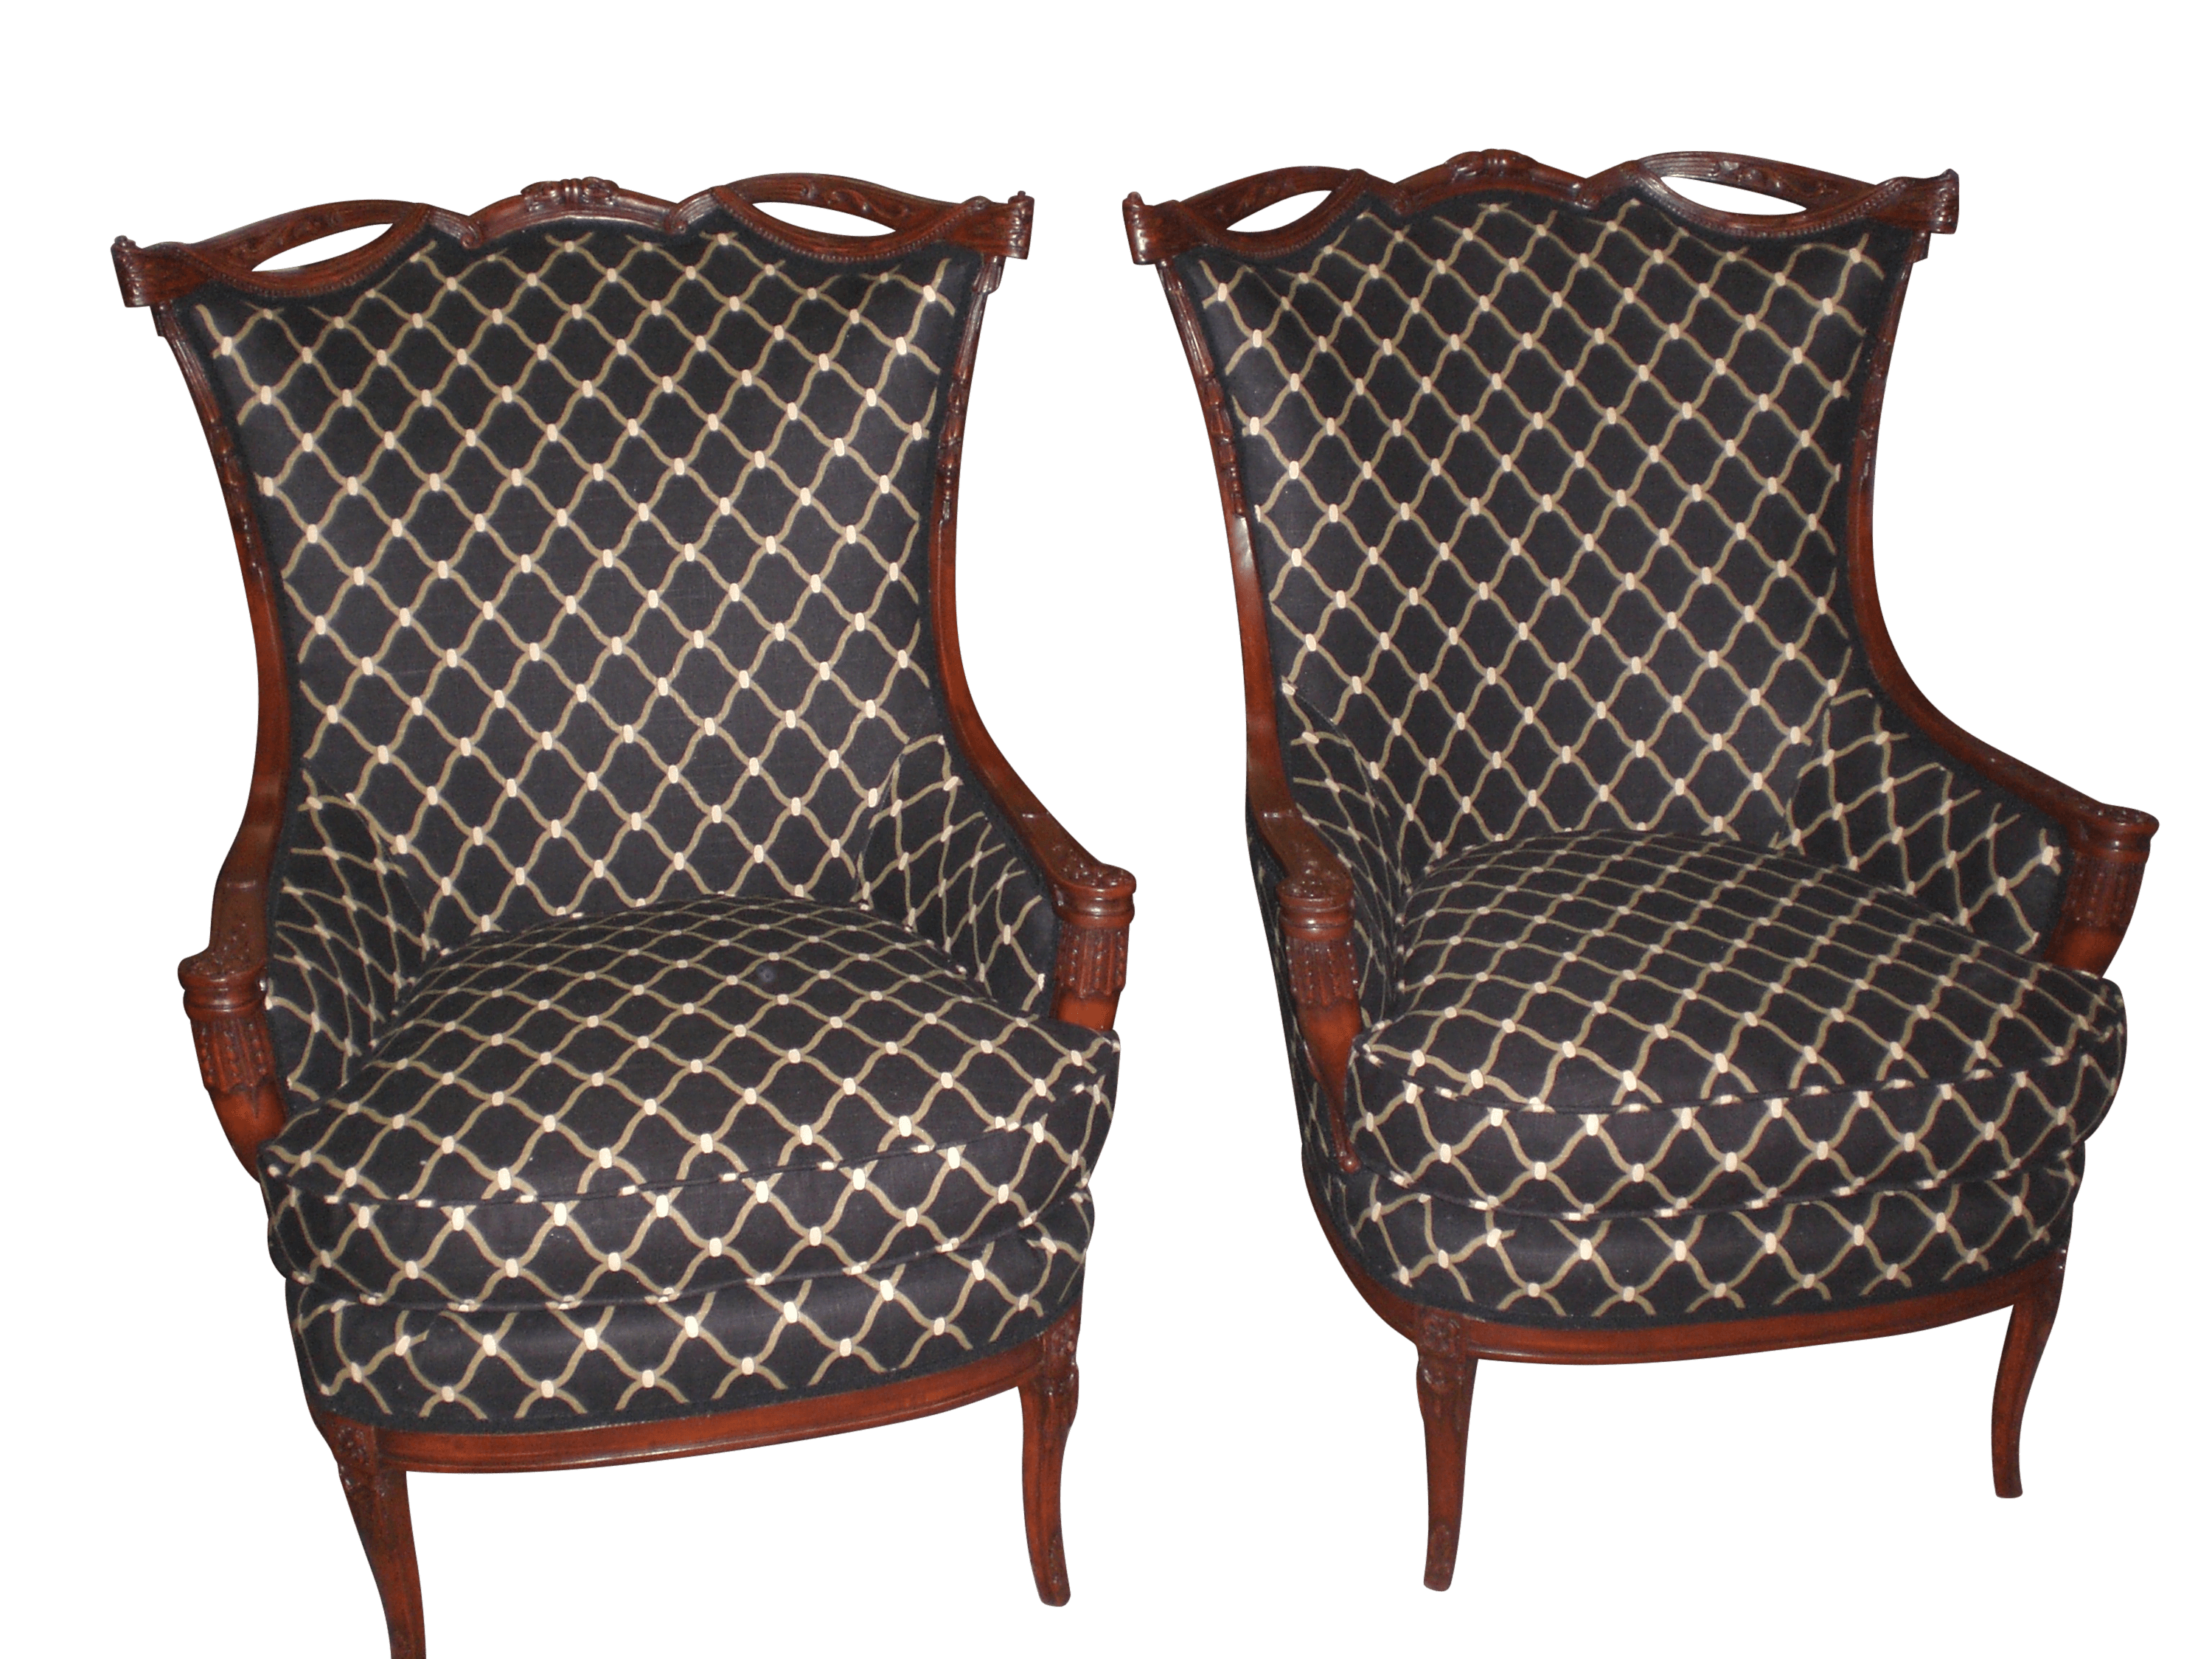 Re-upolstery of a pair of classic chairs